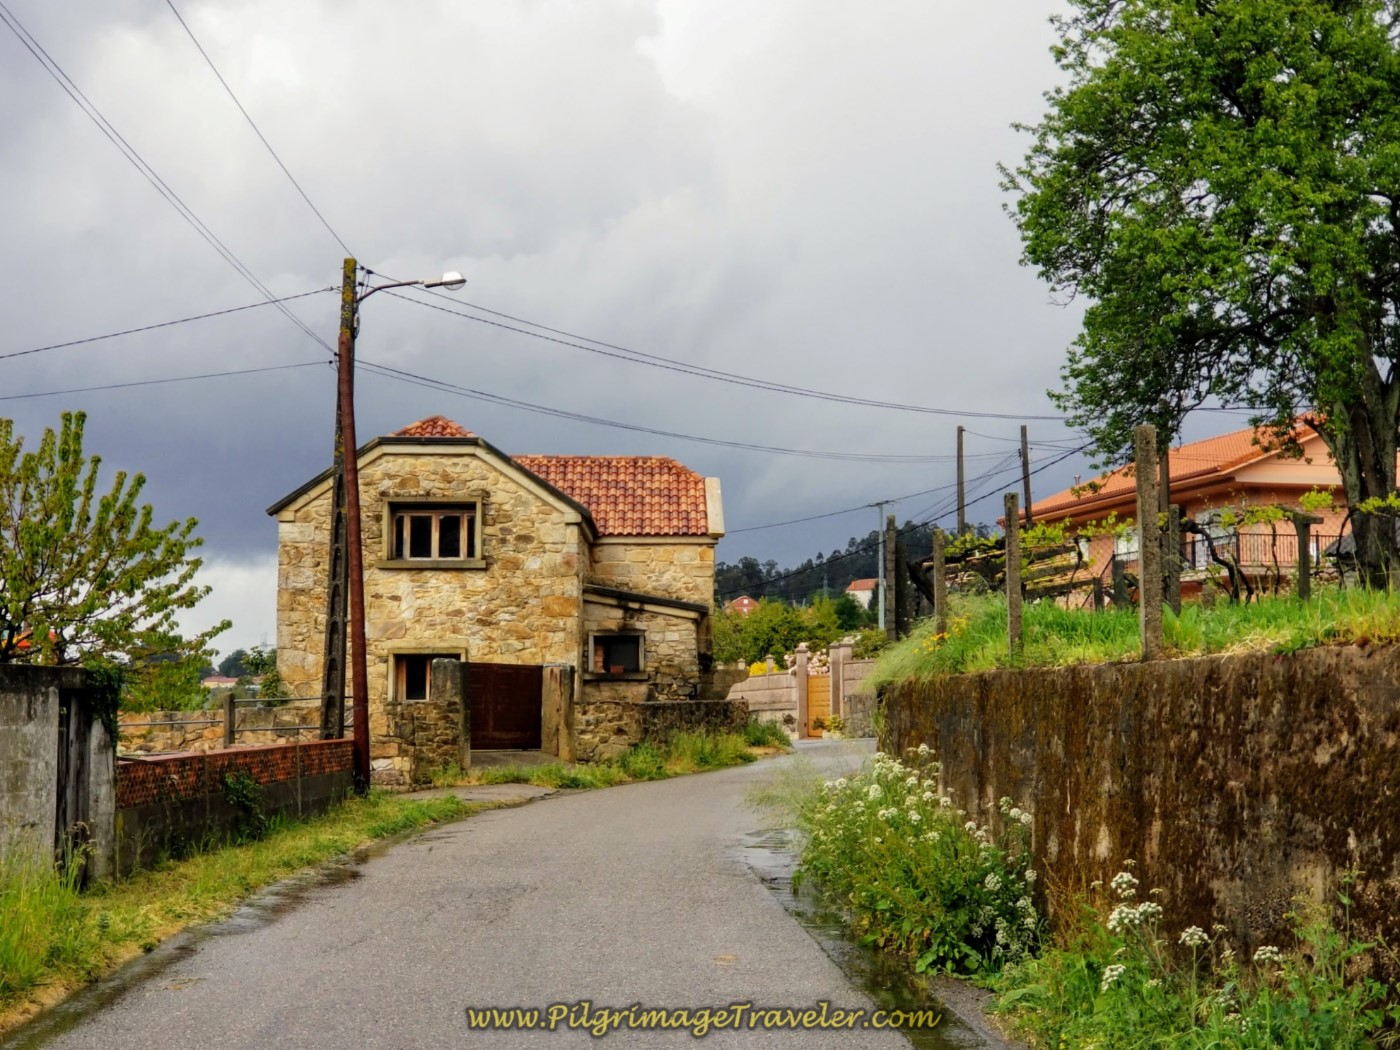 Sun Attempts to Break Through on Country Home on day twenty-one of the central route of the Portuguese Camino